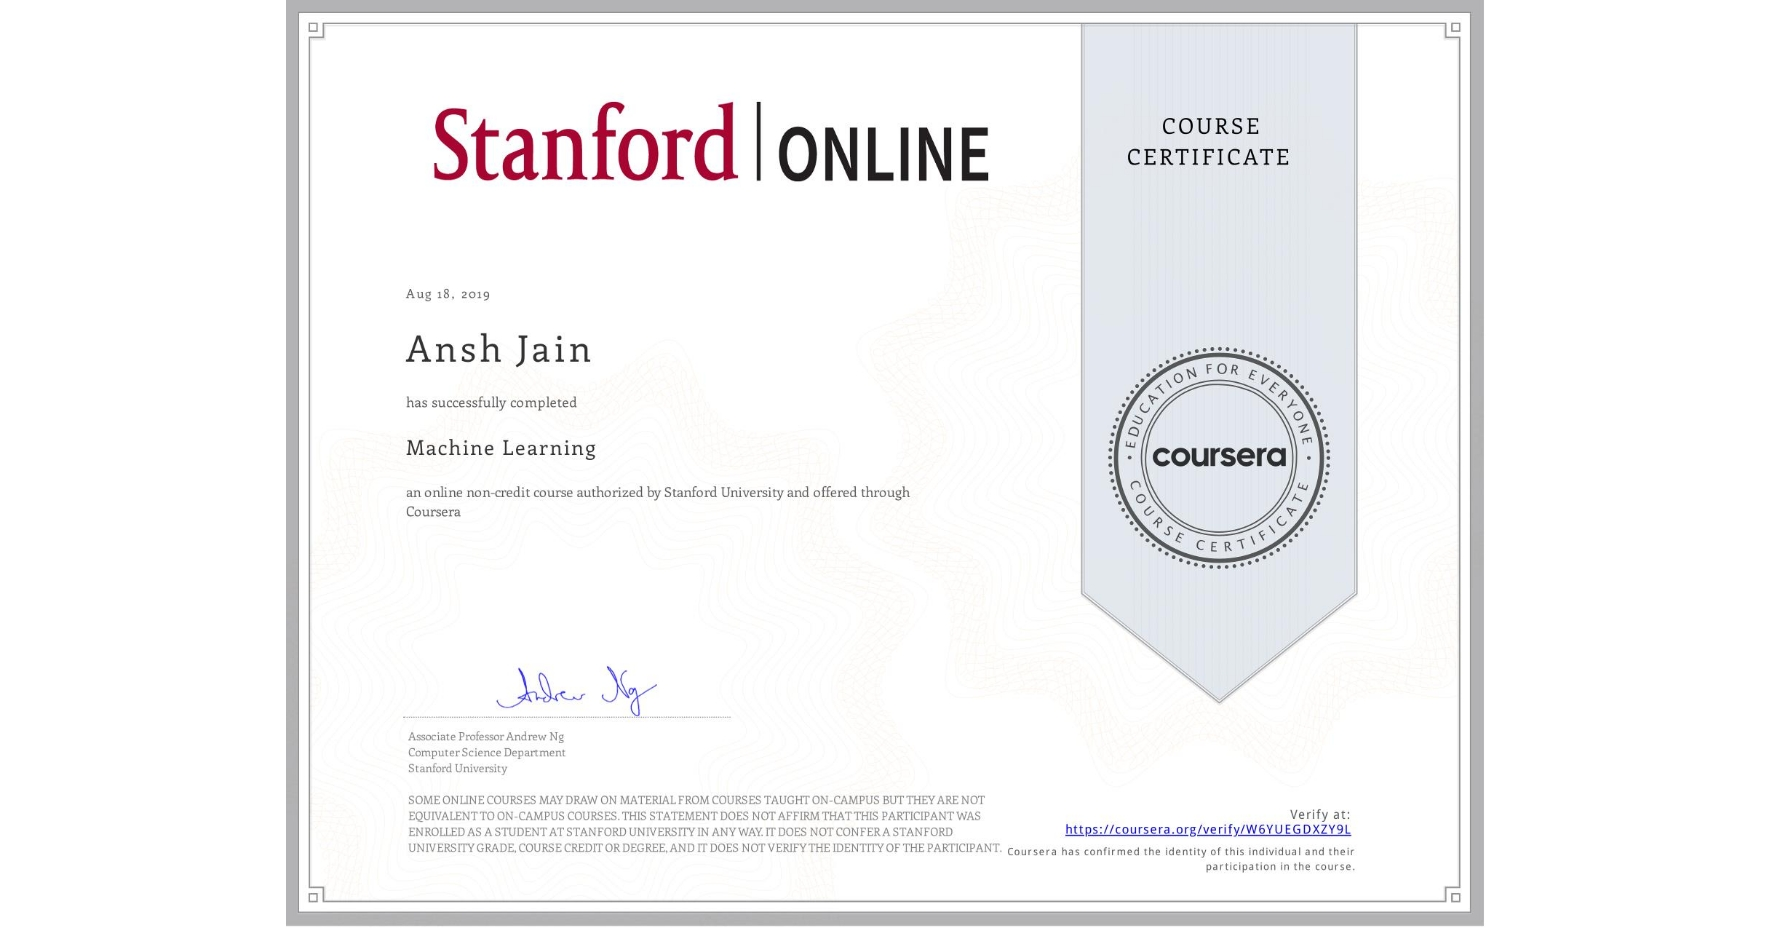 View certificate for Ansh Jain, Machine Learning, an online non-credit course authorized by Stanford University and offered through Coursera